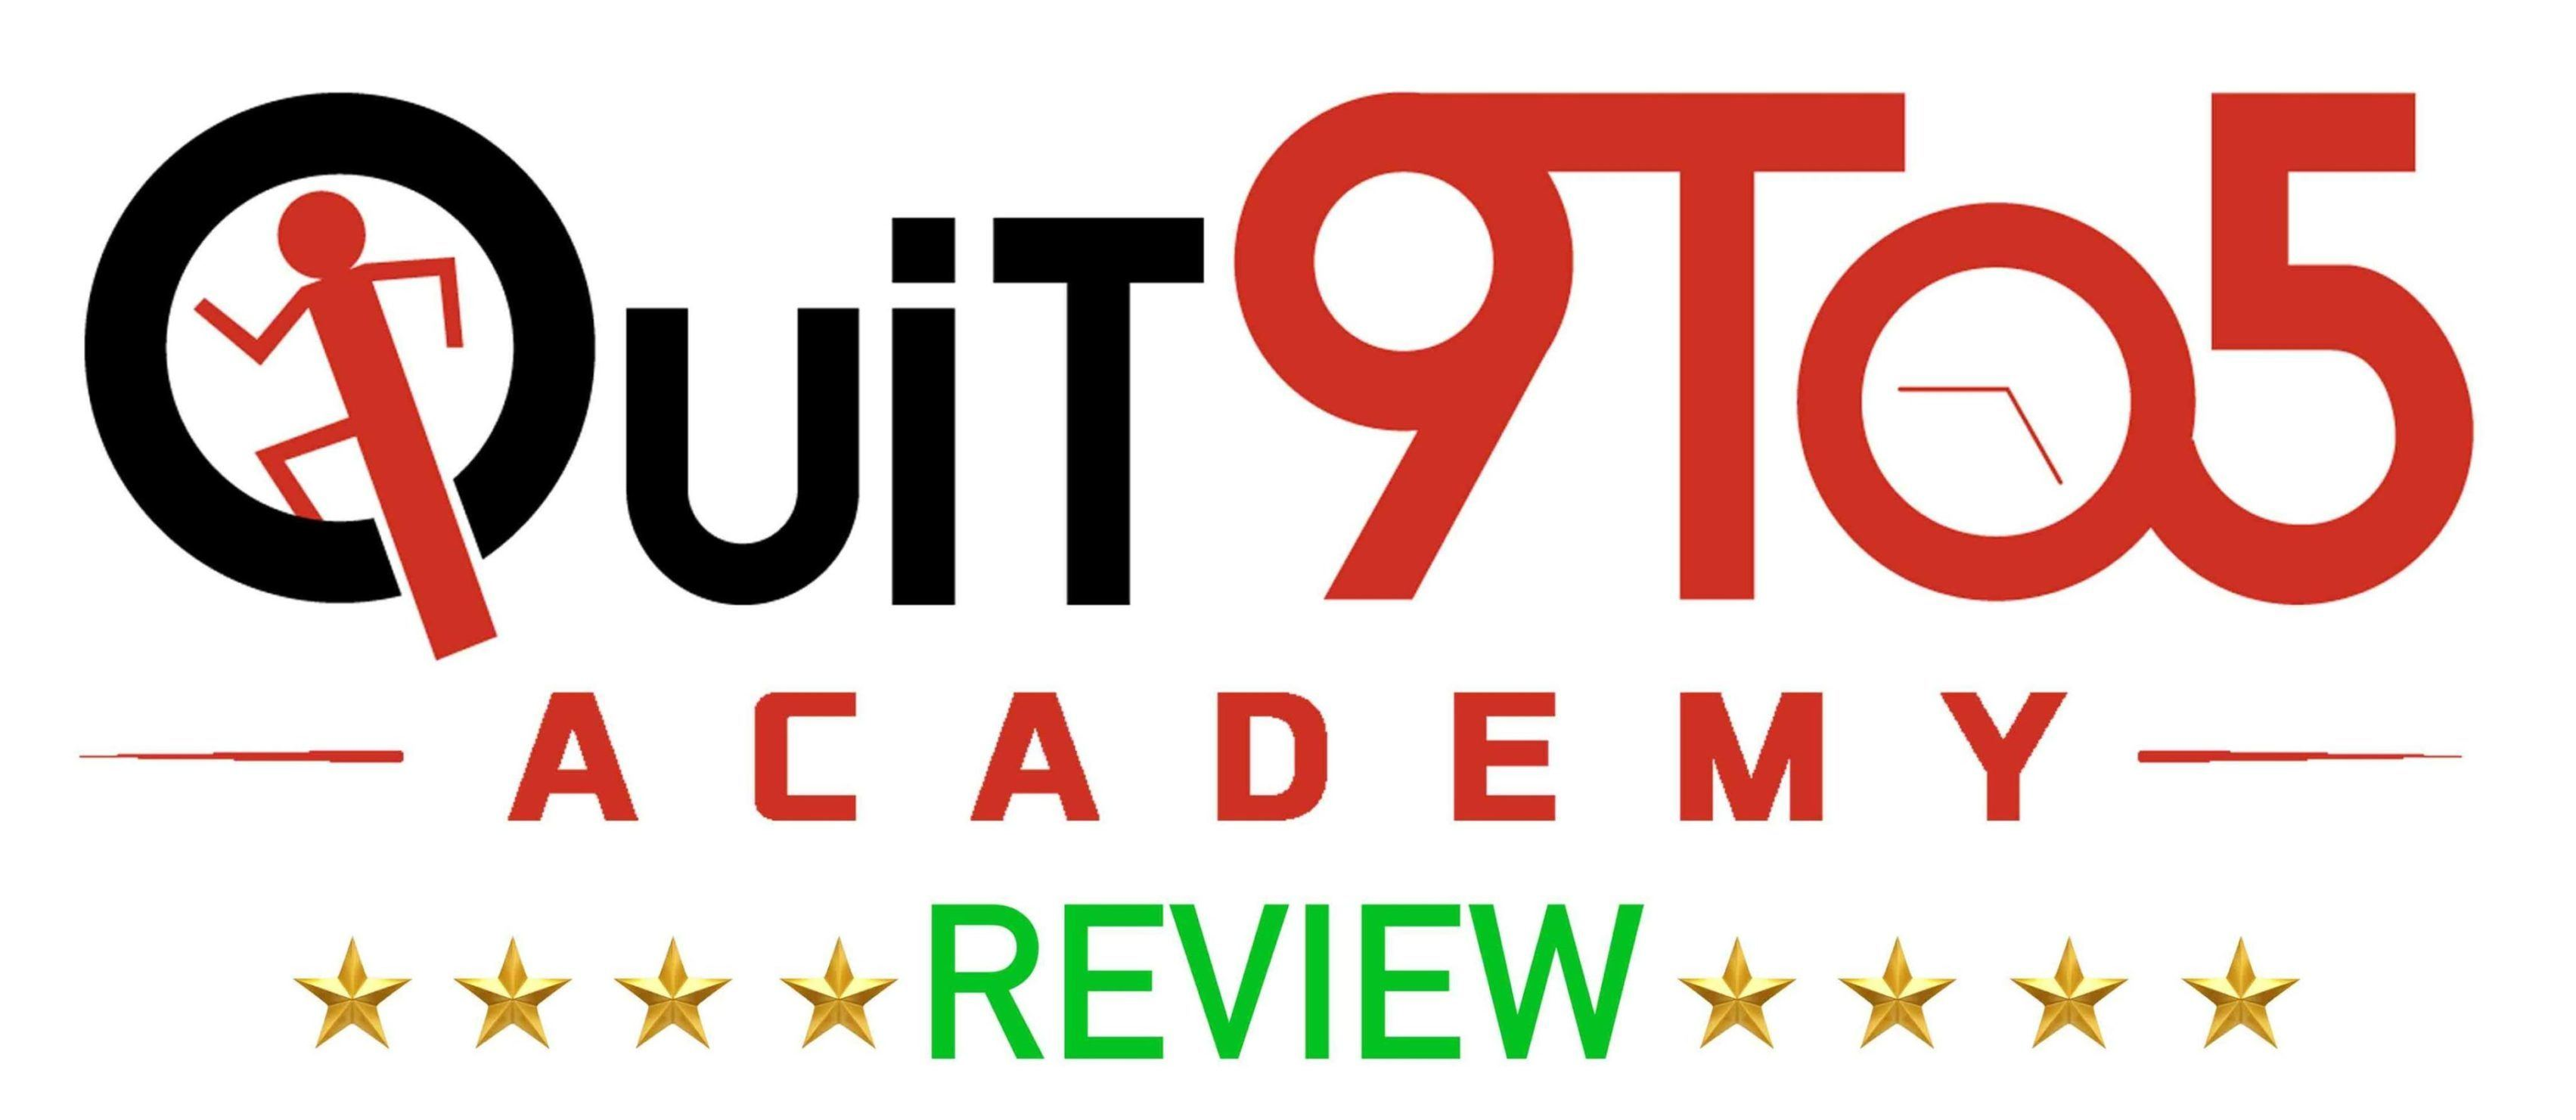 Quit9to5 academy review